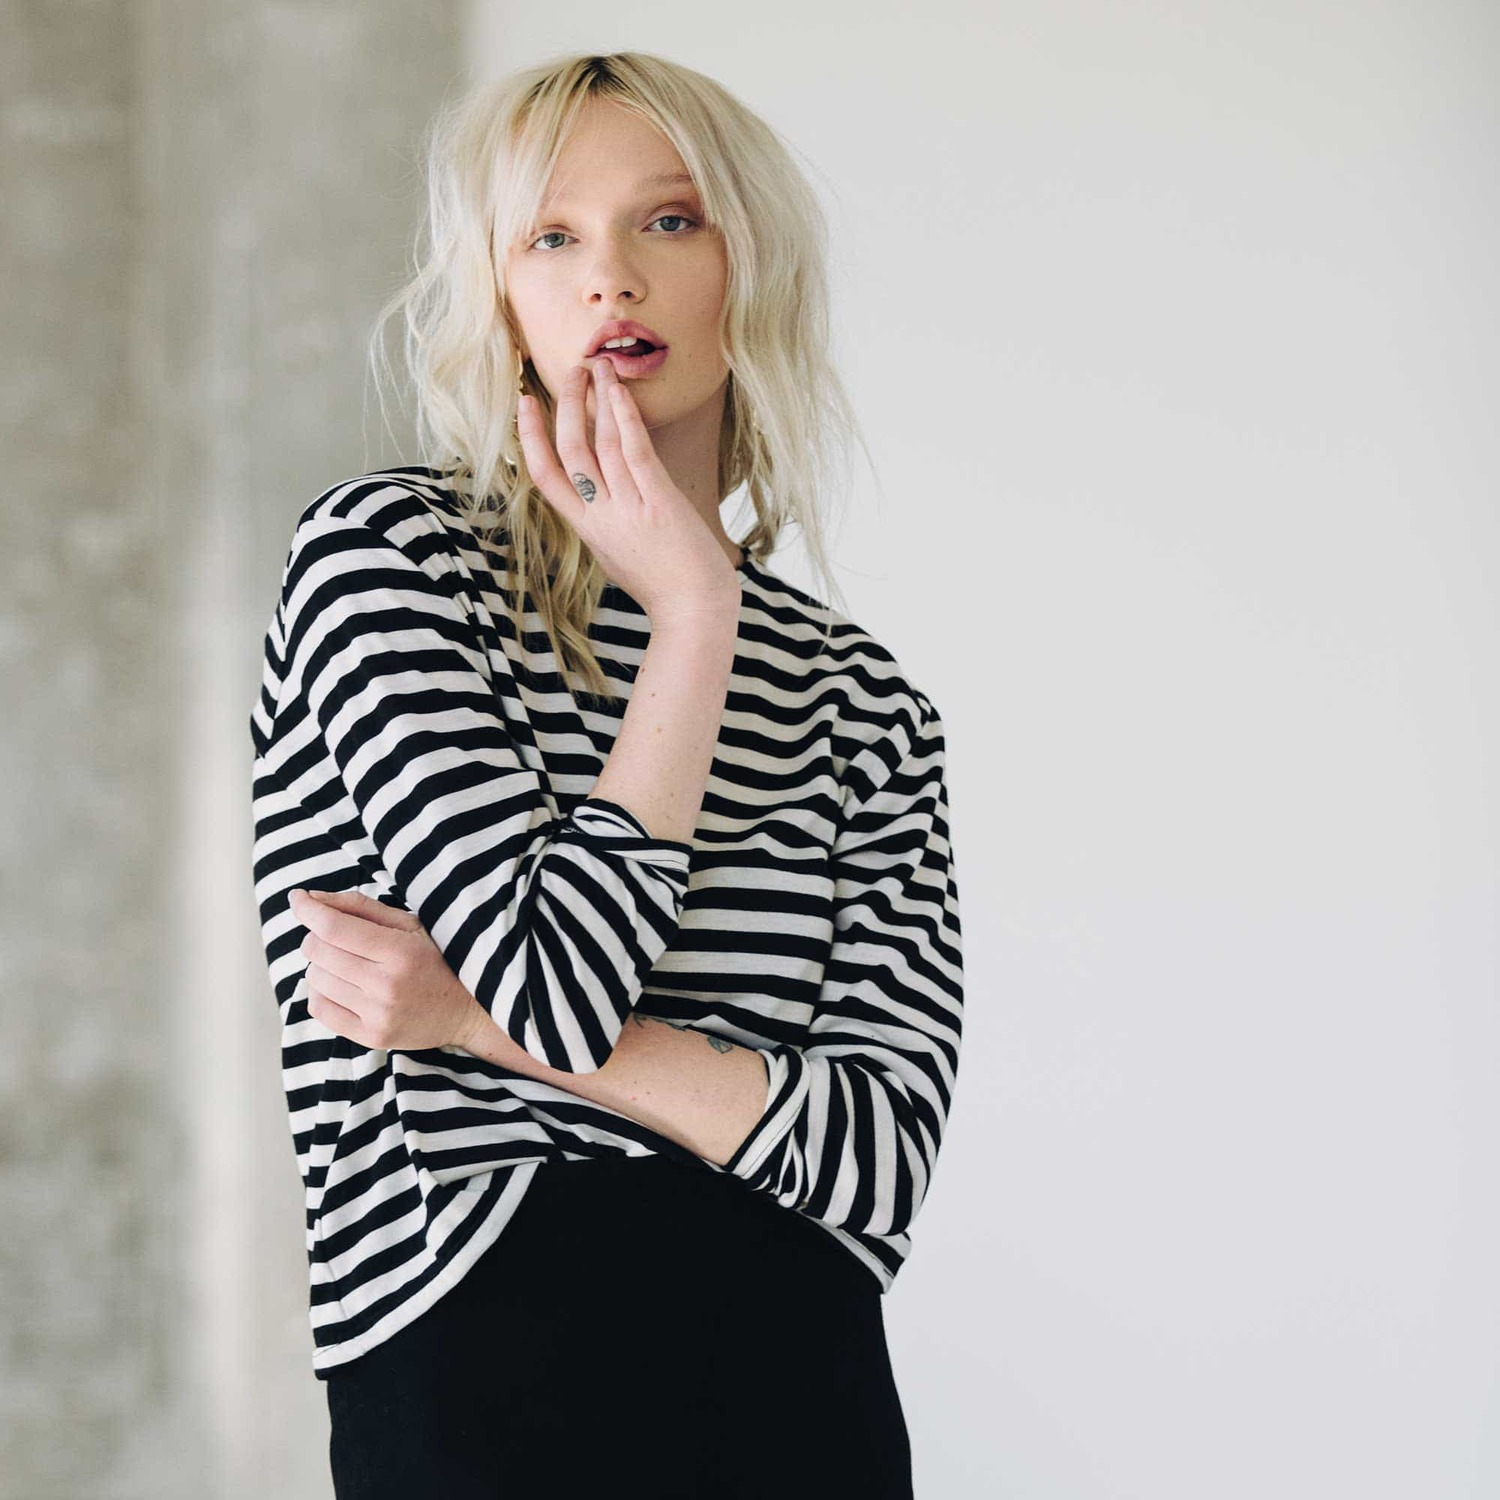 Womens Long Sleeve Boxy Tee In Black And White Stripes 34